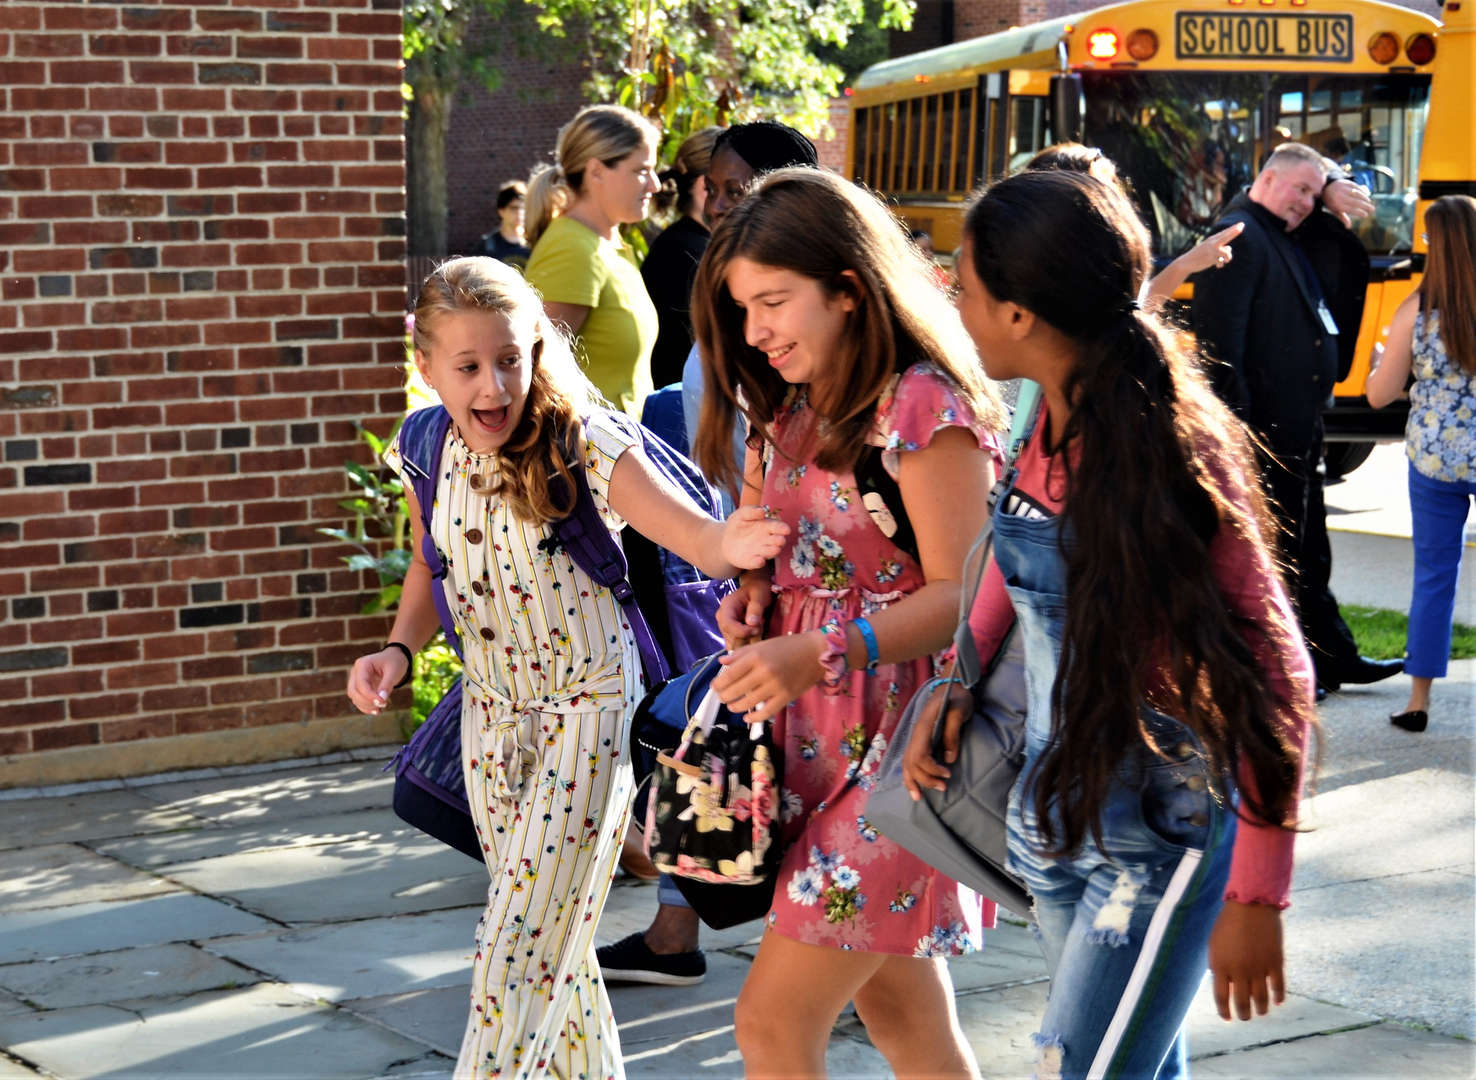 Three girls enter the school building on the first day back.